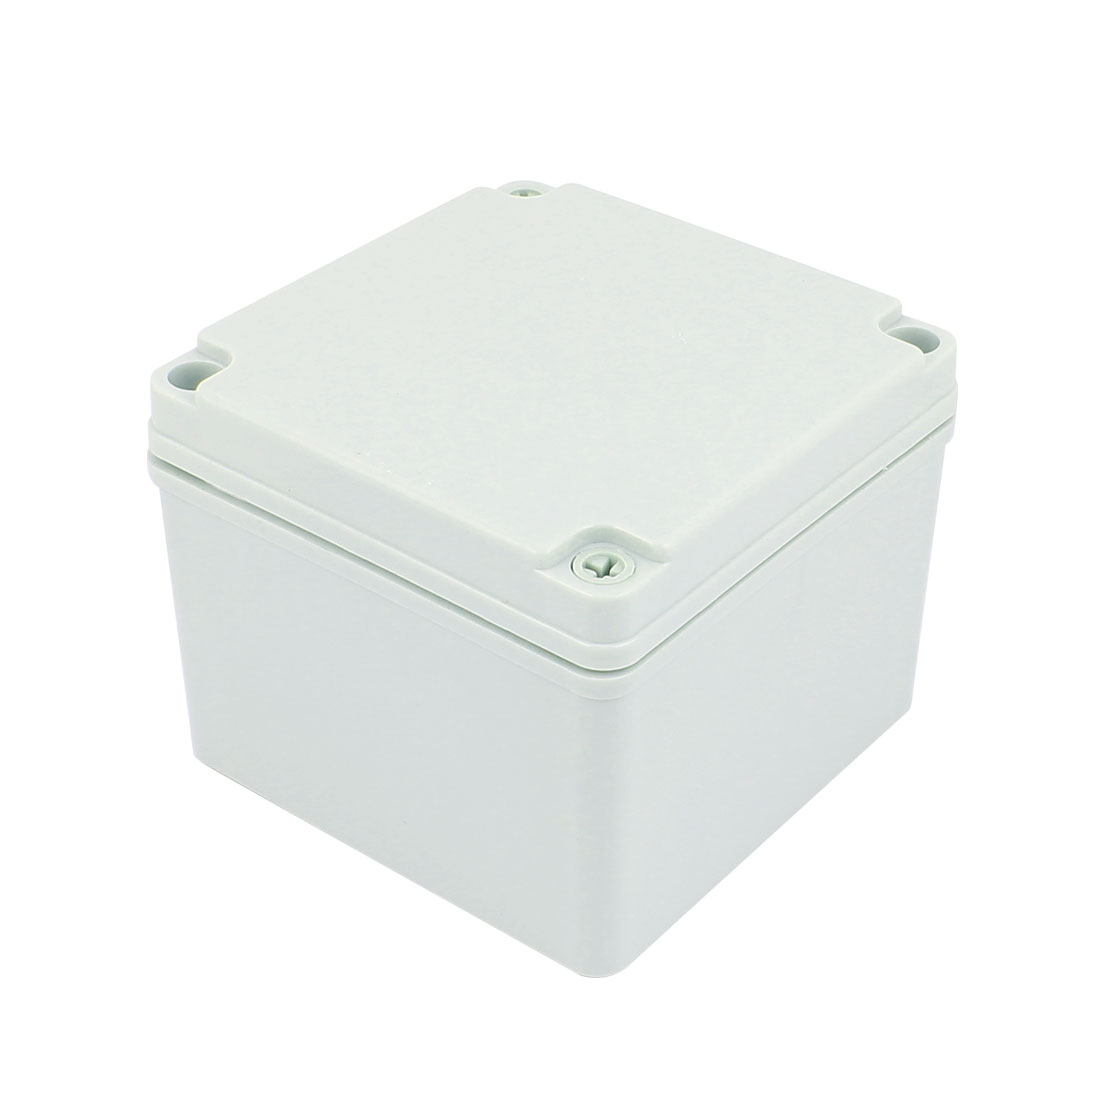 Dustproof IP65 Junction Box DIY Terminal Connection Enclosure Adaptable 117mm x117mm x 92mm